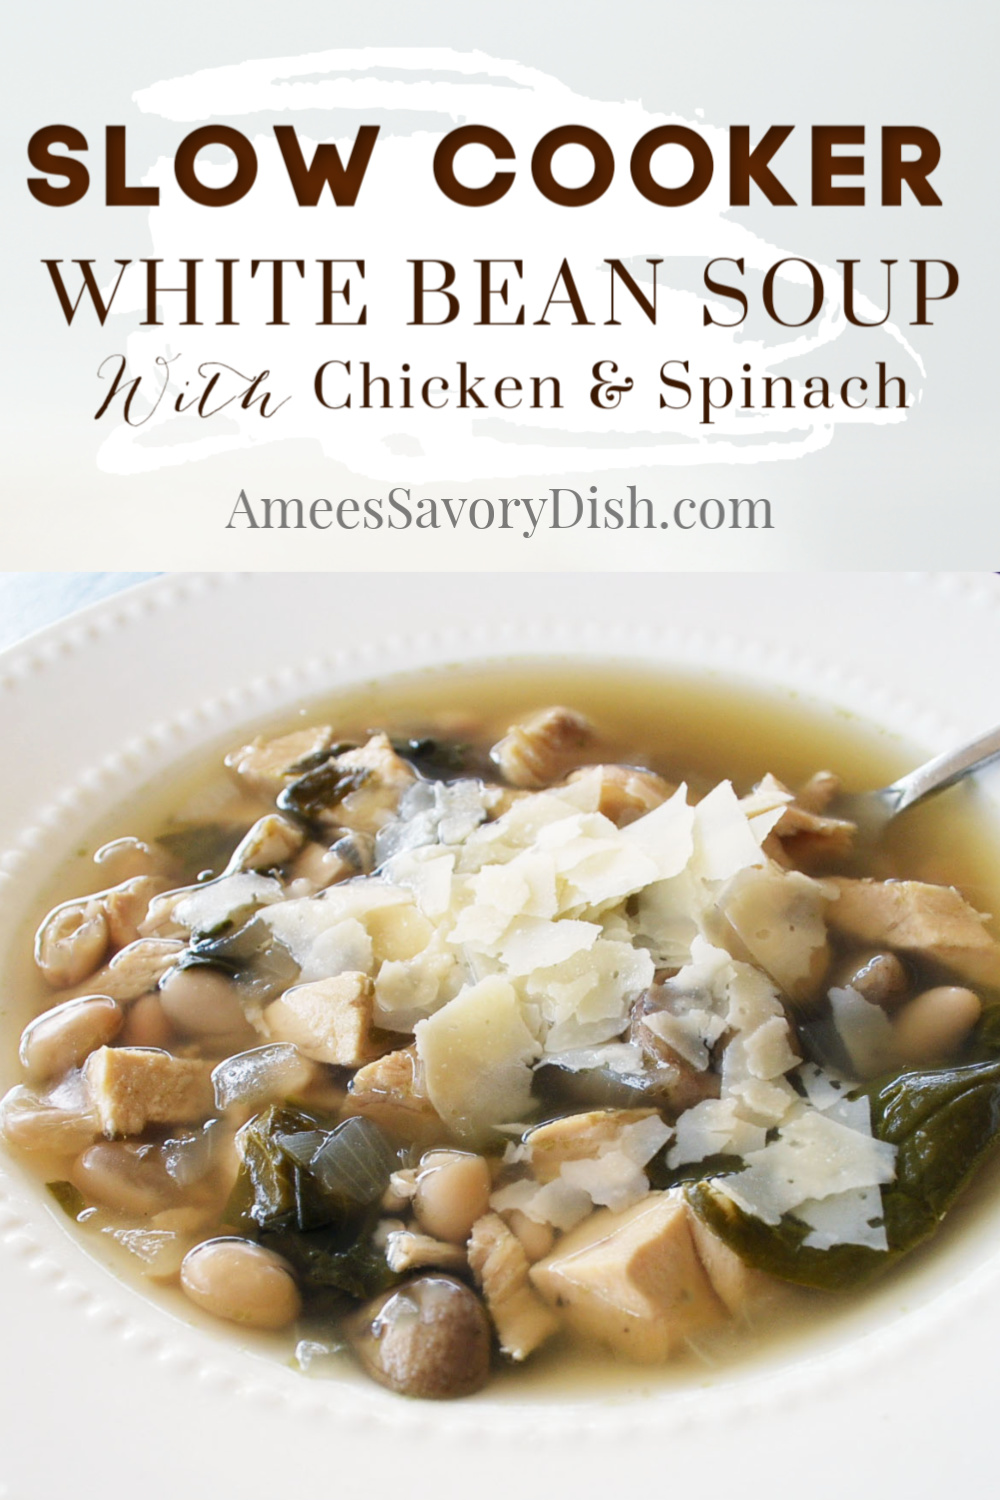 Slow cooker soup white bean soup is one of the simplest weeknight dinner solutions around! This crockpot chicken soup recipe combines chicken, spinach, and white beans to create a comforting, flavorful meal. #easysouprecipe #slowcookersoup #whitebeansoup #chickensoup via @Ameessavorydish